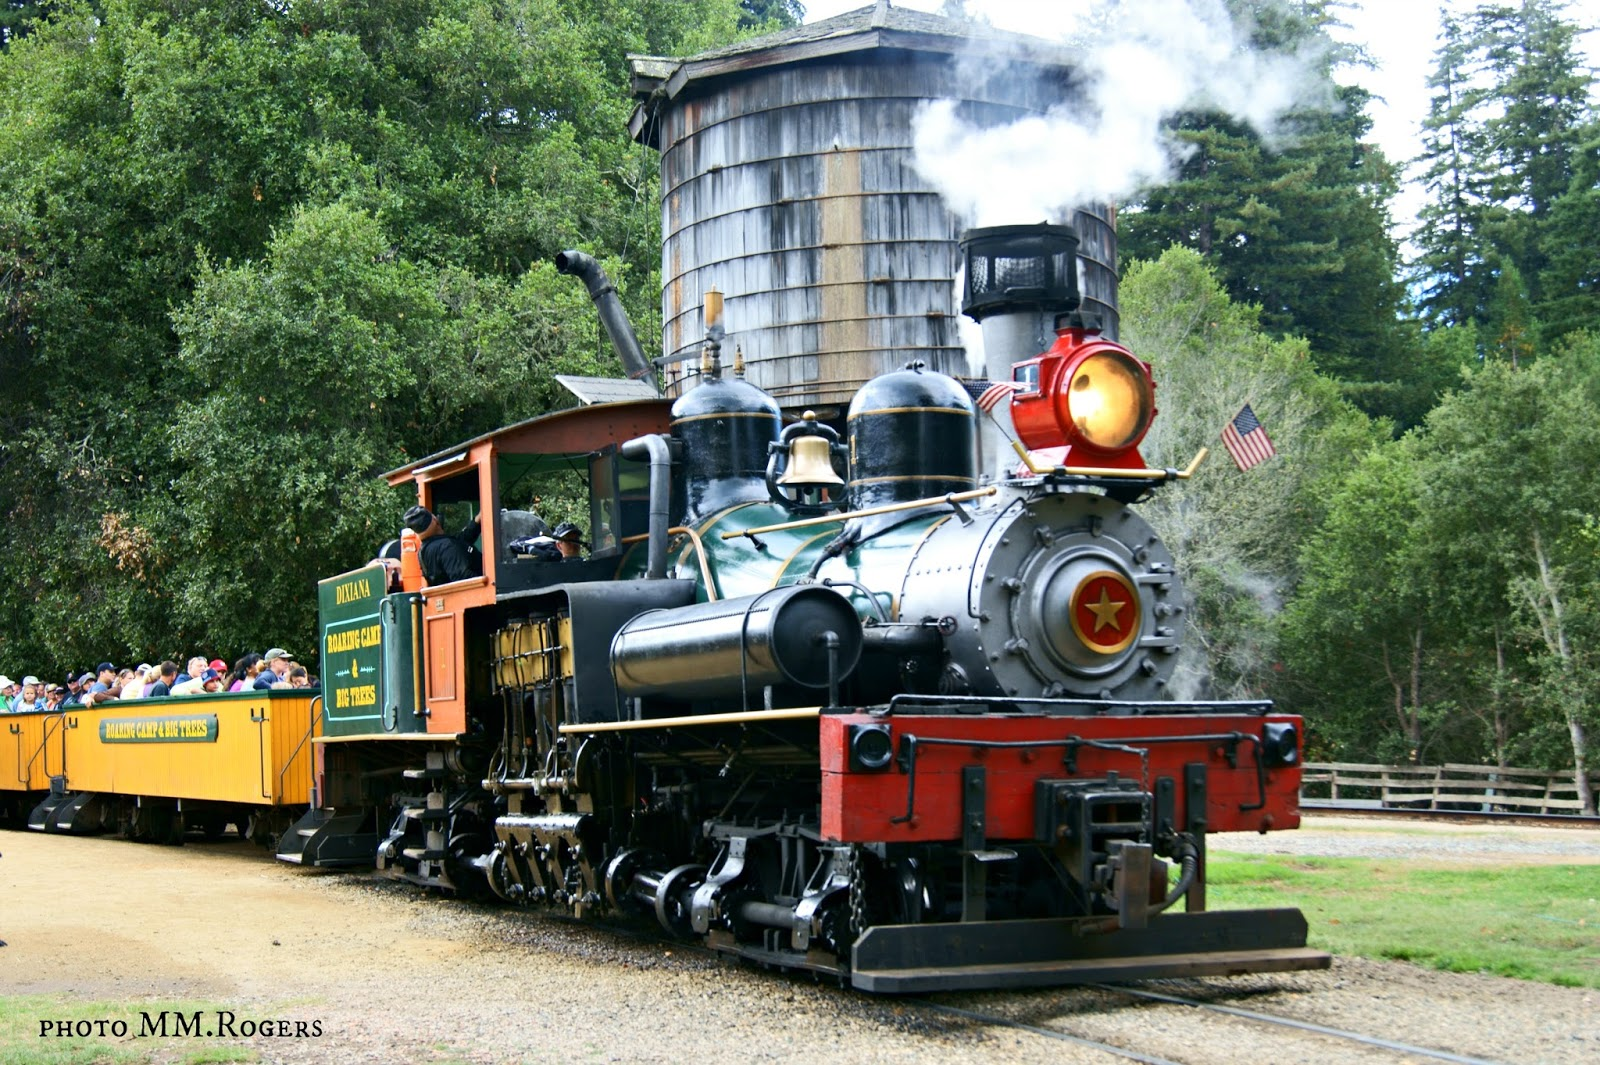 Nov 09, · Ride through the Santa Cruz redwood forests aboard a steam locomotive on this alternative sightseeing tour, a great choice for travelers with limited time. Guarantee access to the popular and often sold-out Roaring Camp Steam Train by booking in advance, and personalize your itinerary by choosing /5().